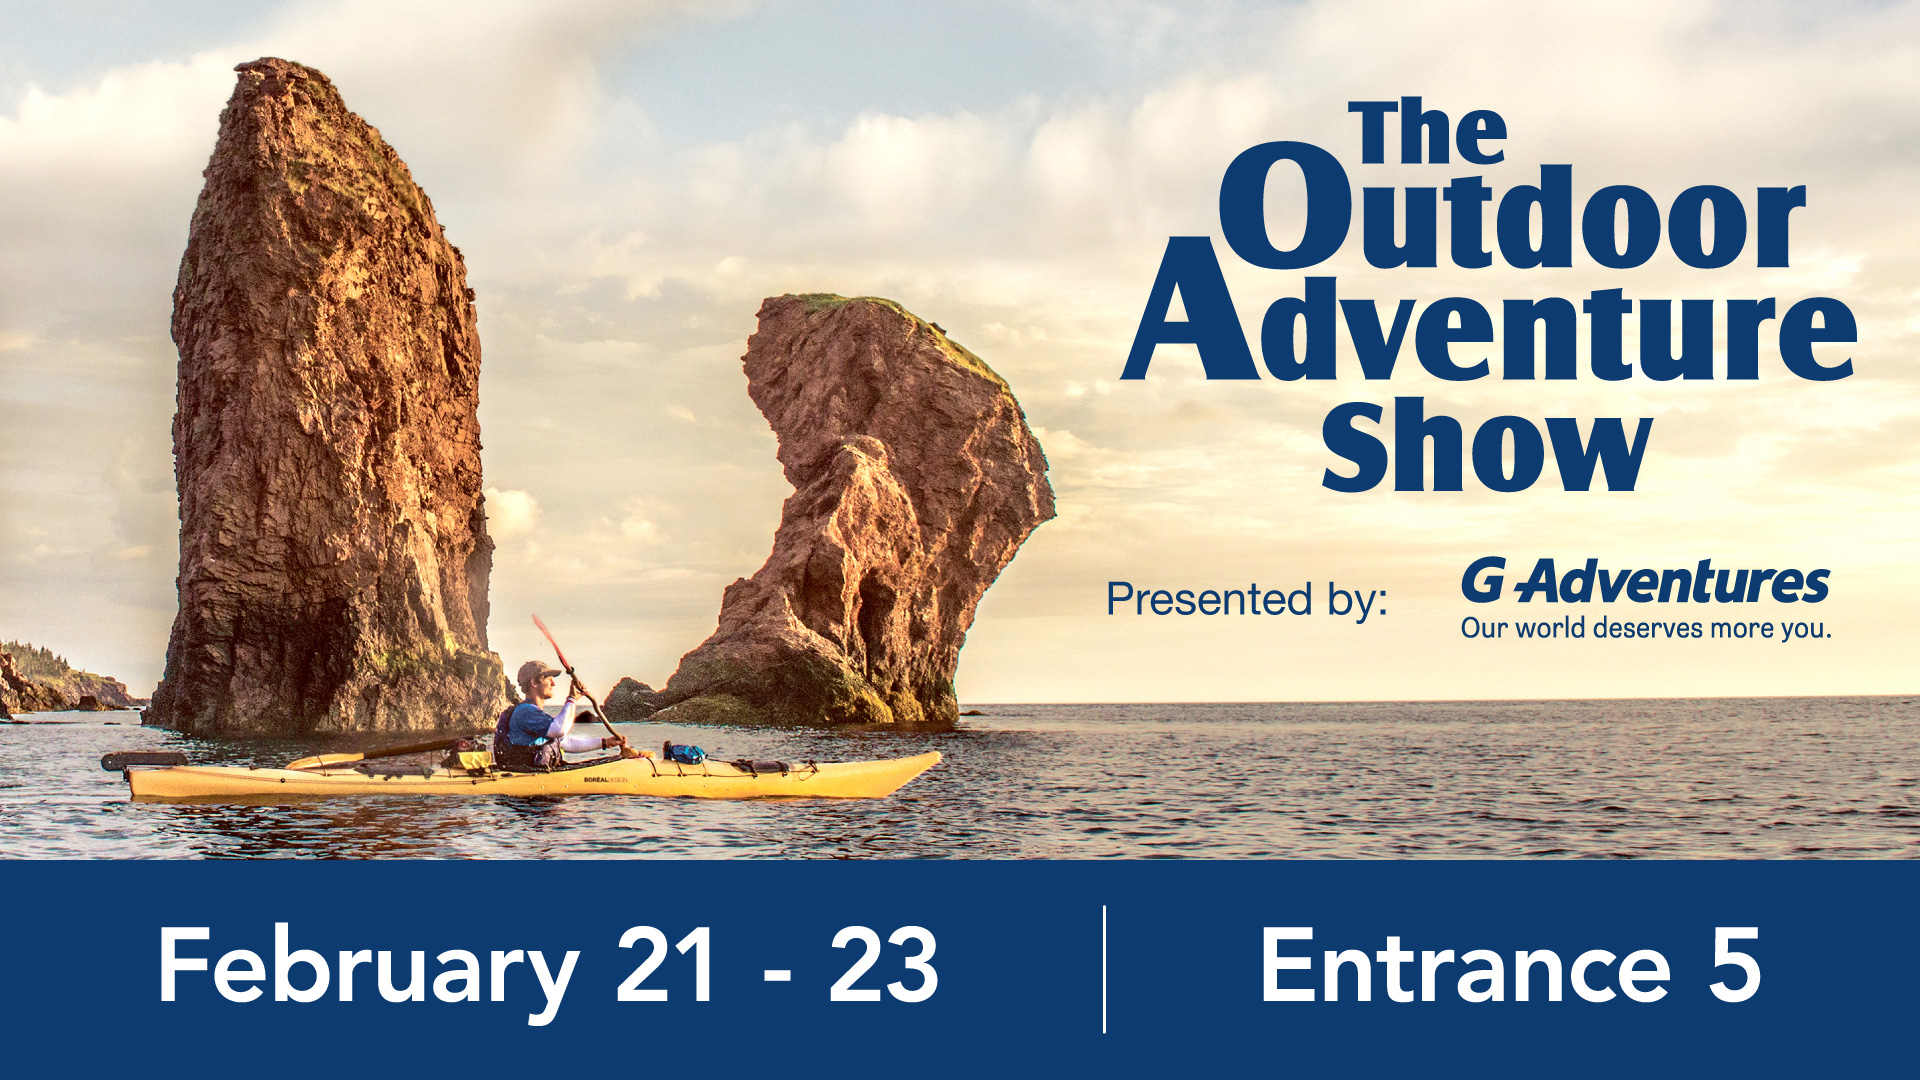 The Toronto Outdoor Adventure Show